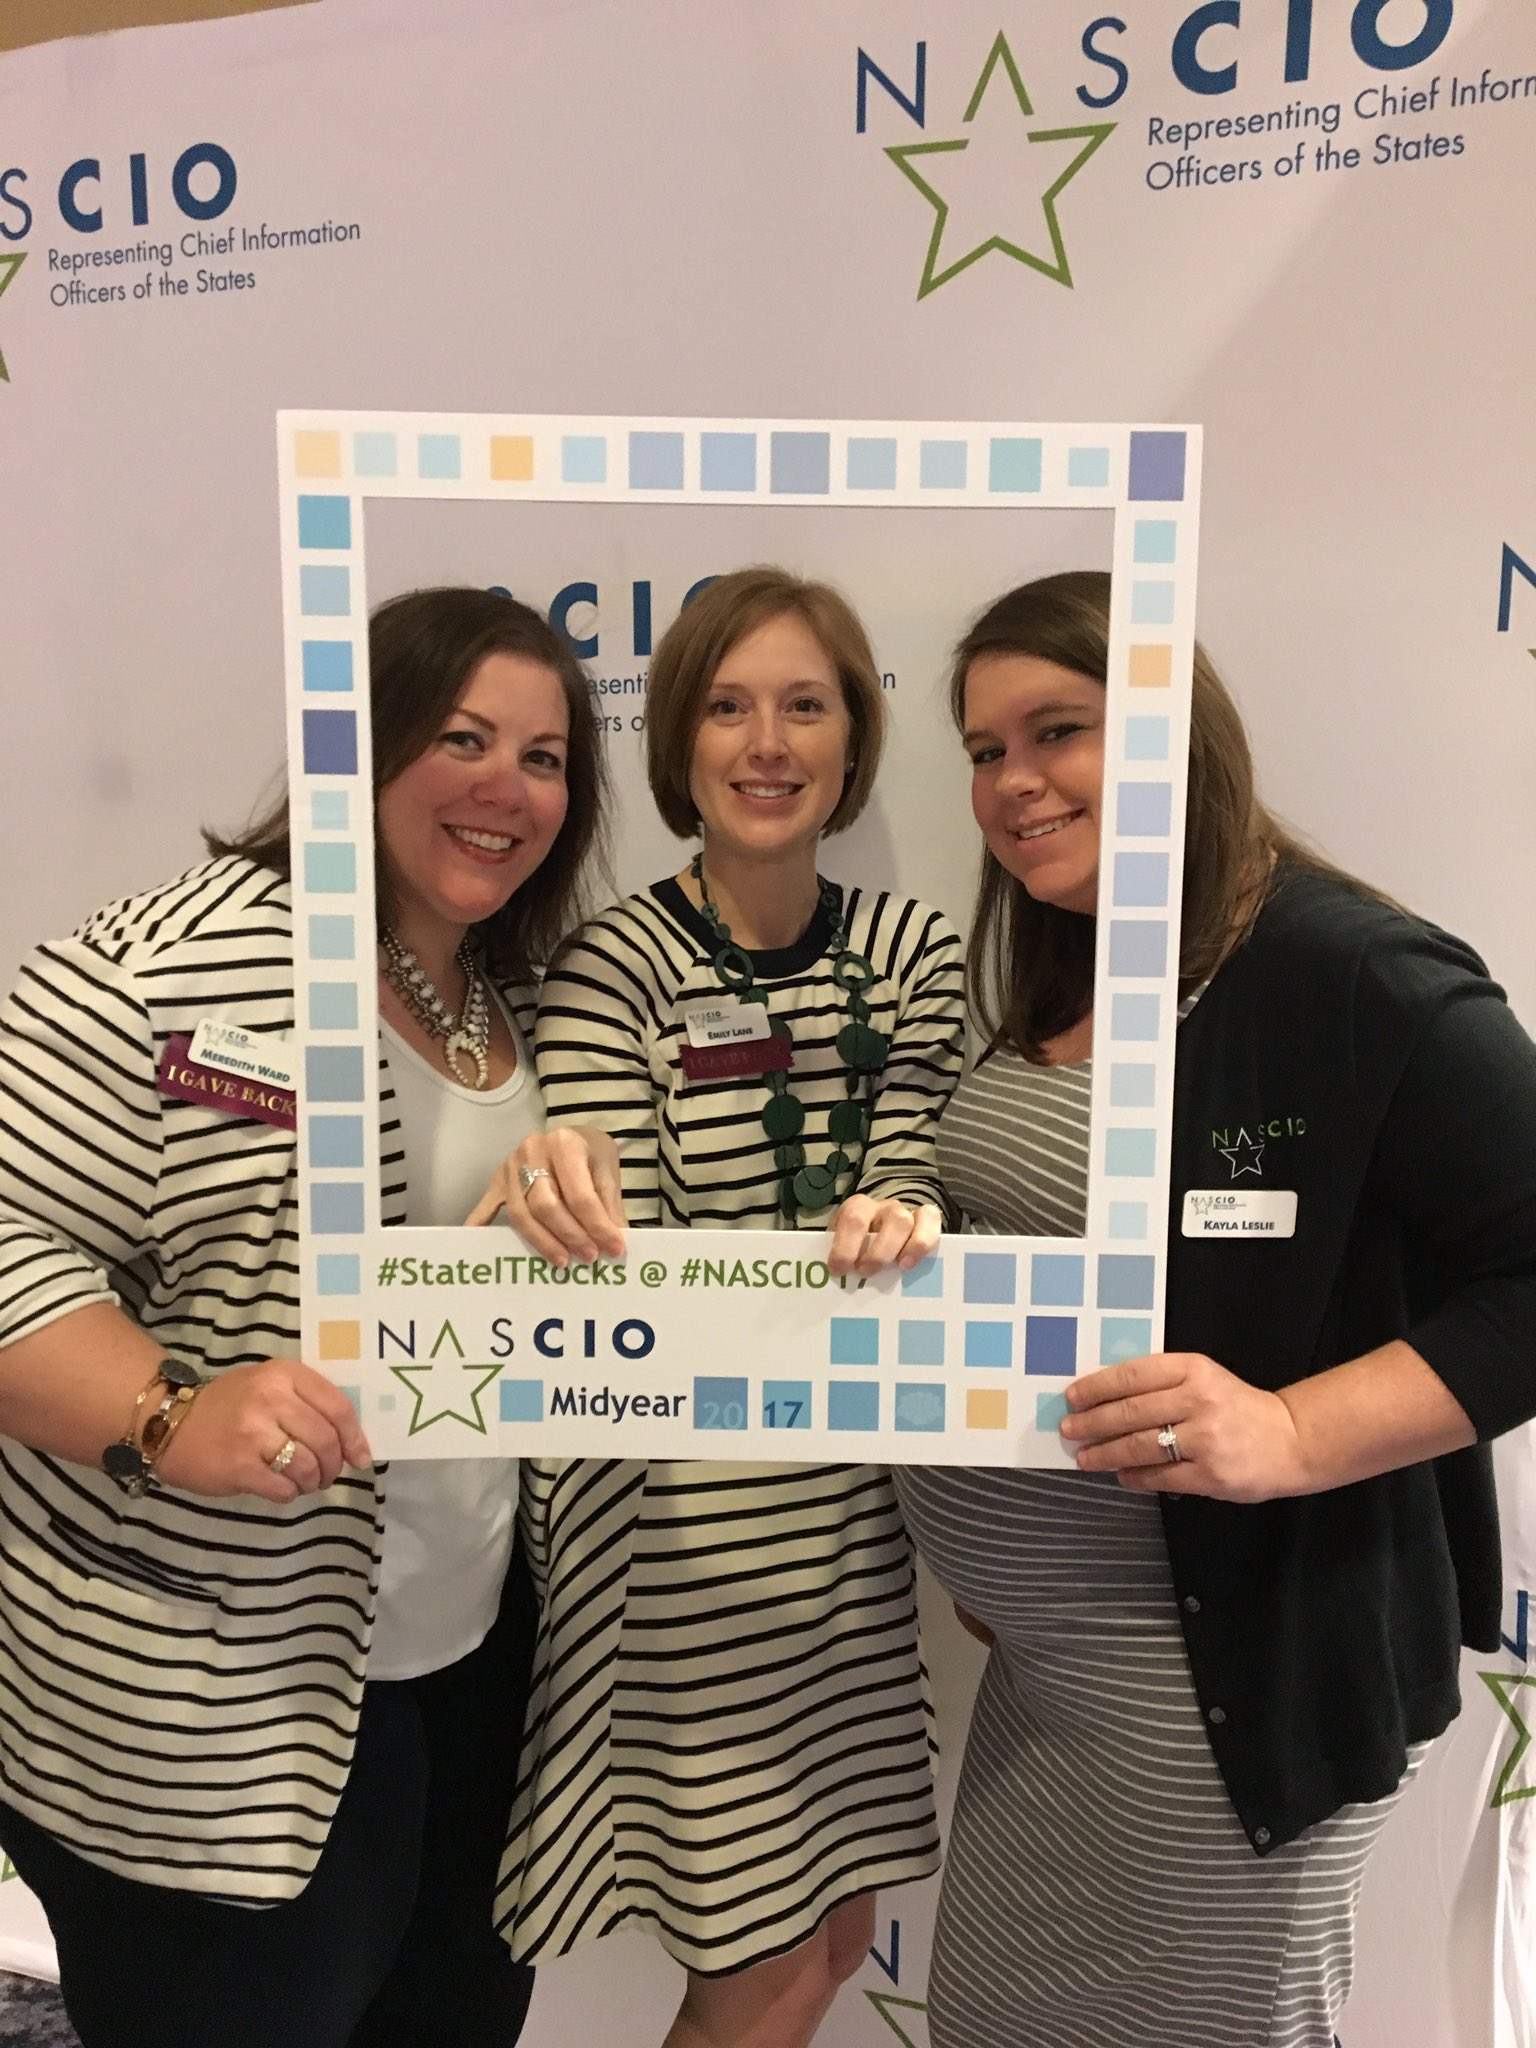 At @NASCIO we wear stripes #NASCIO17 https://t.co/hgzWlOGT5i